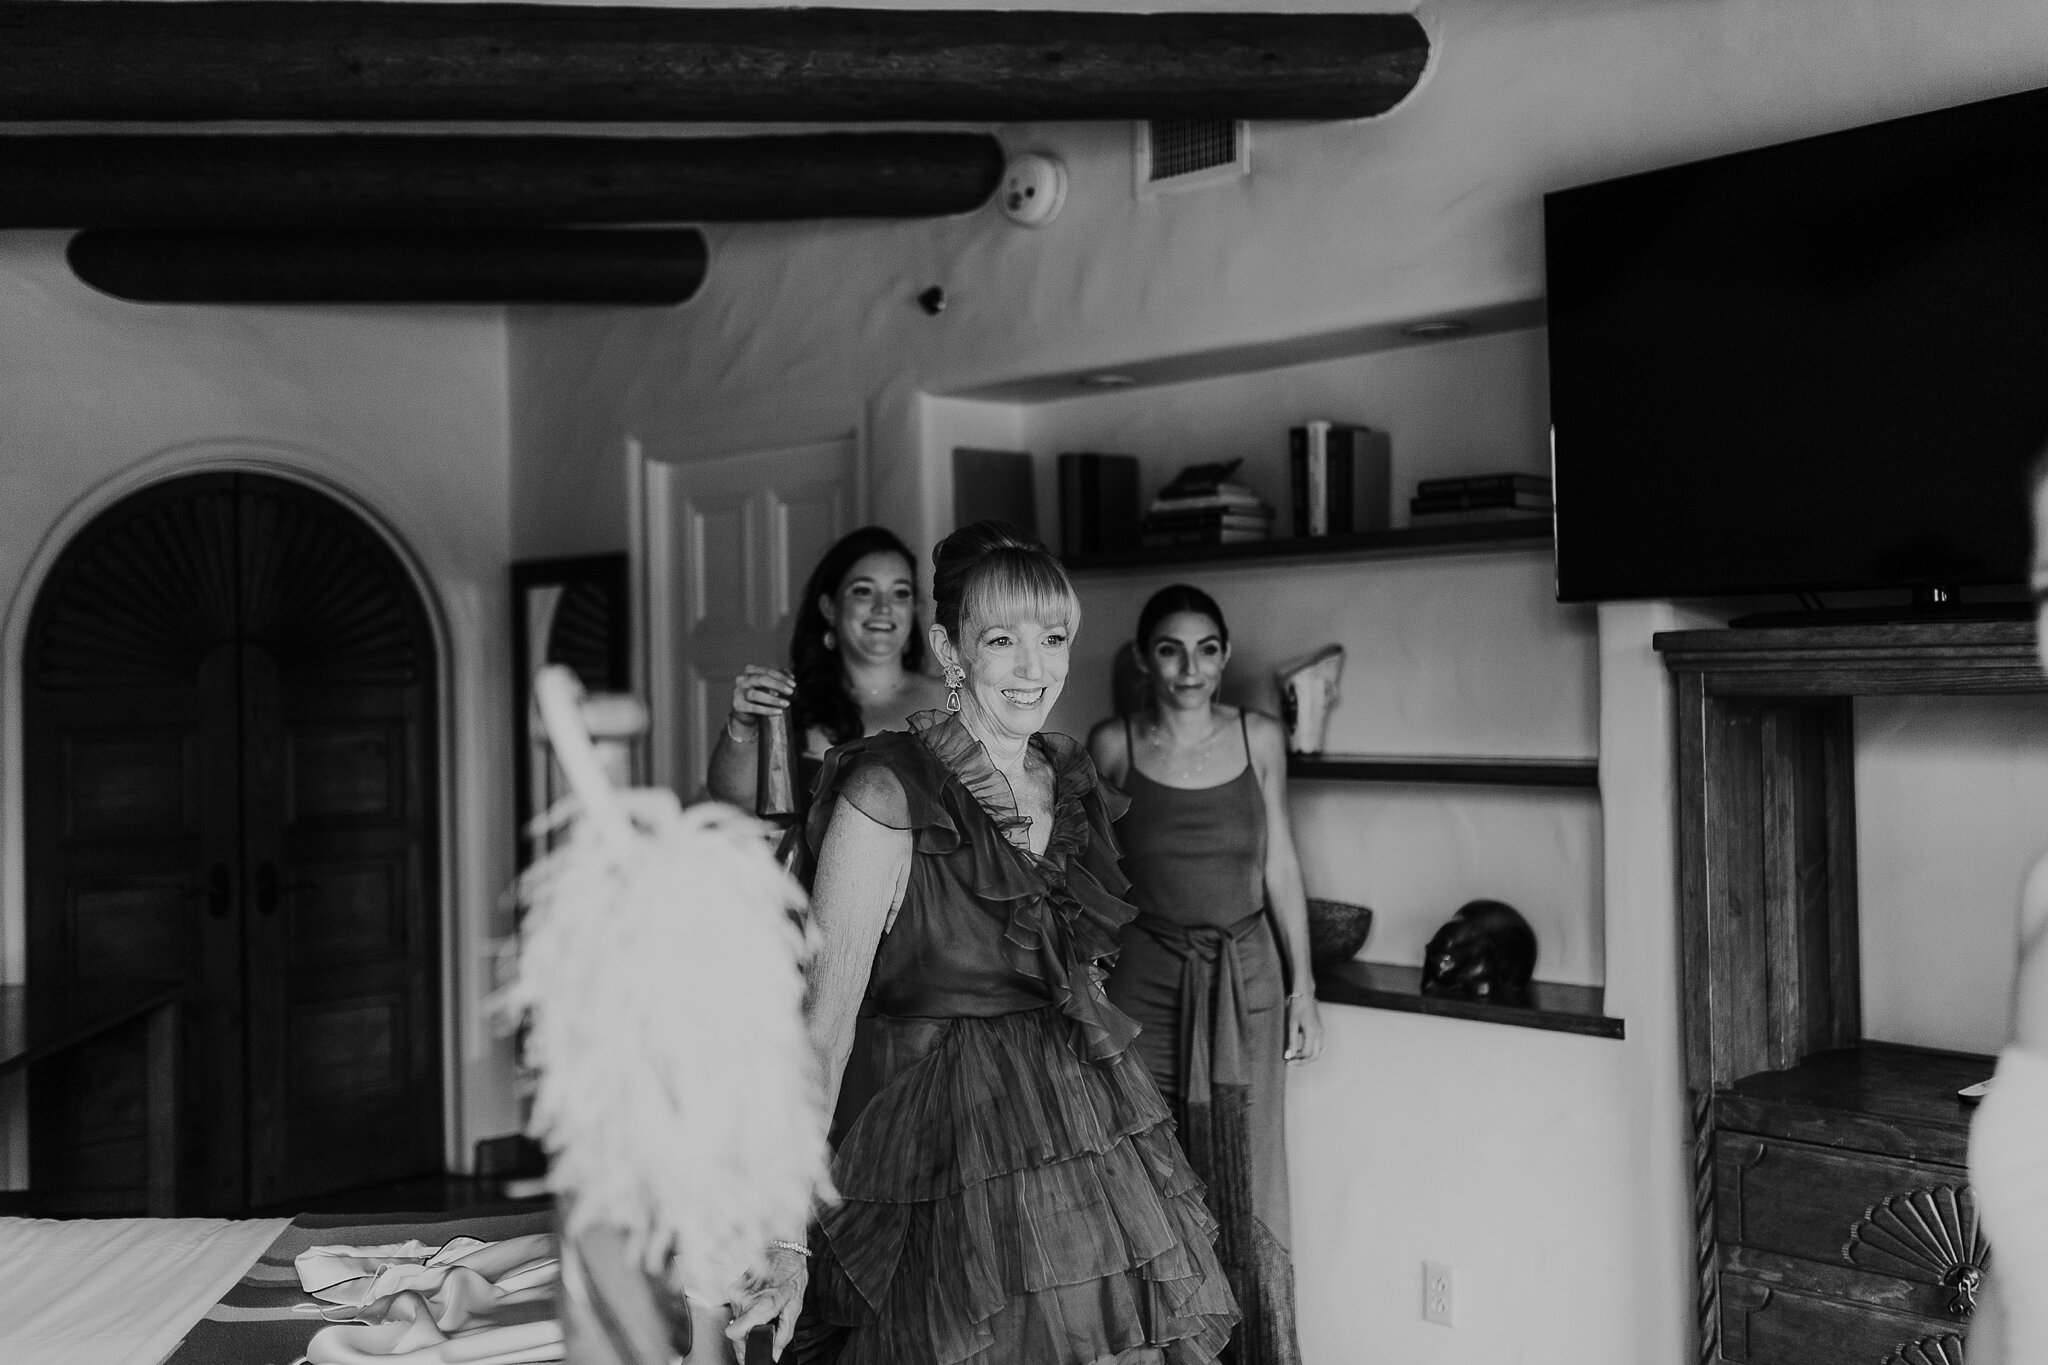 Alicia+lucia+photography+-+albuquerque+wedding+photographer+-+santa+fe+wedding+photography+-+new+mexico+wedding+photographer+-+new+mexico+wedding+-+la+fonda+wedding+-+la+fonda+on+the+plaza+-+santa+fe+wedding+-+brooklyn+bride_0014.jpg